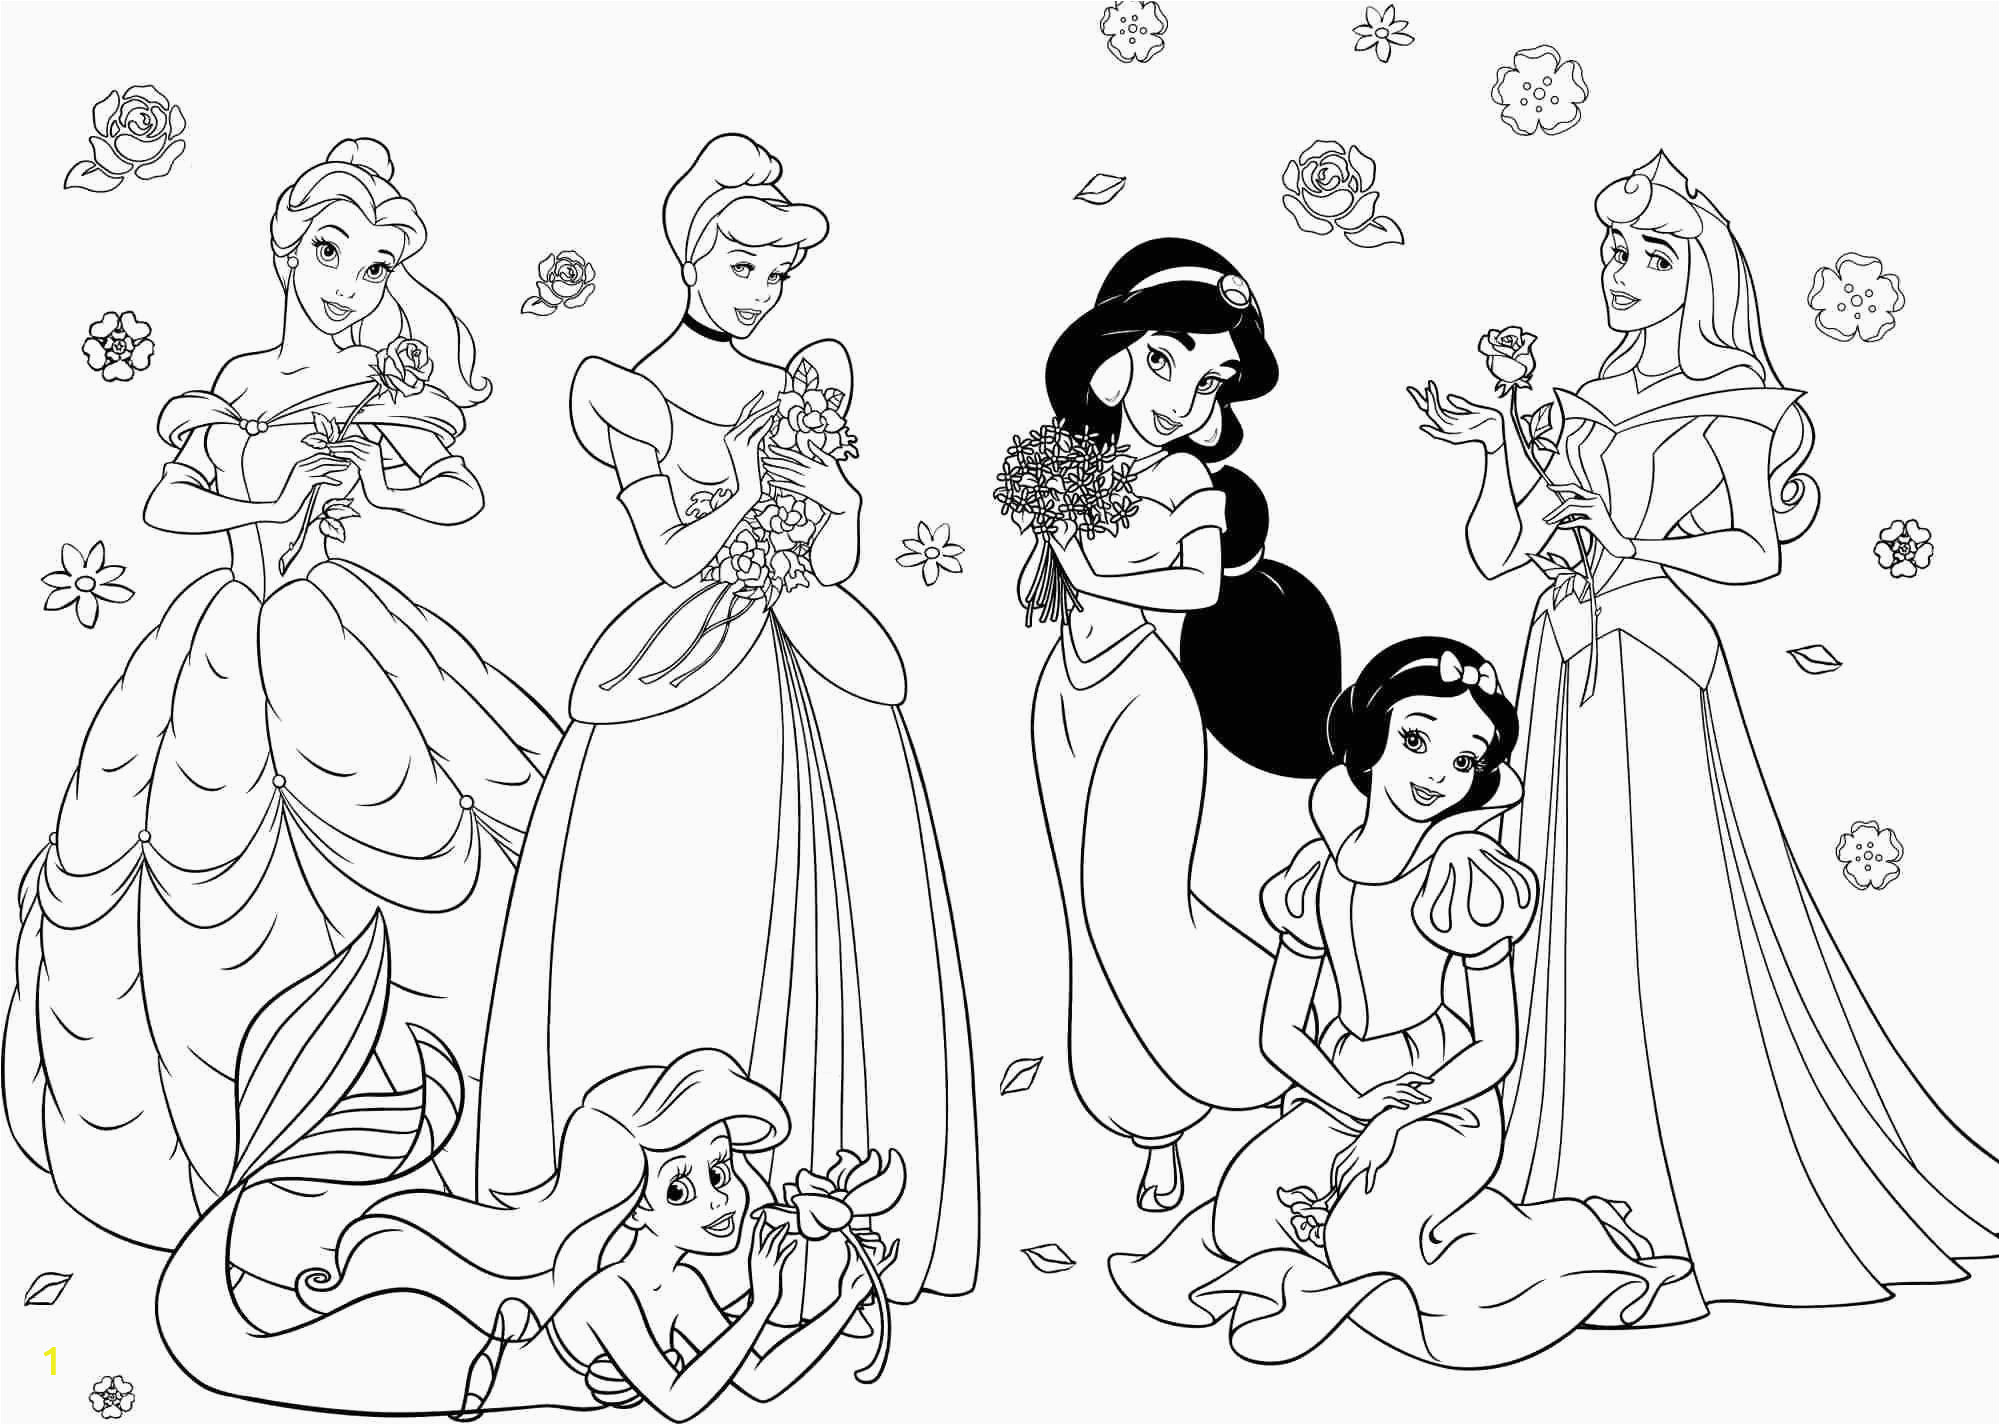 Disney Princess Coloring Pages to Print Tree Girl Coloring In 2020 with Images